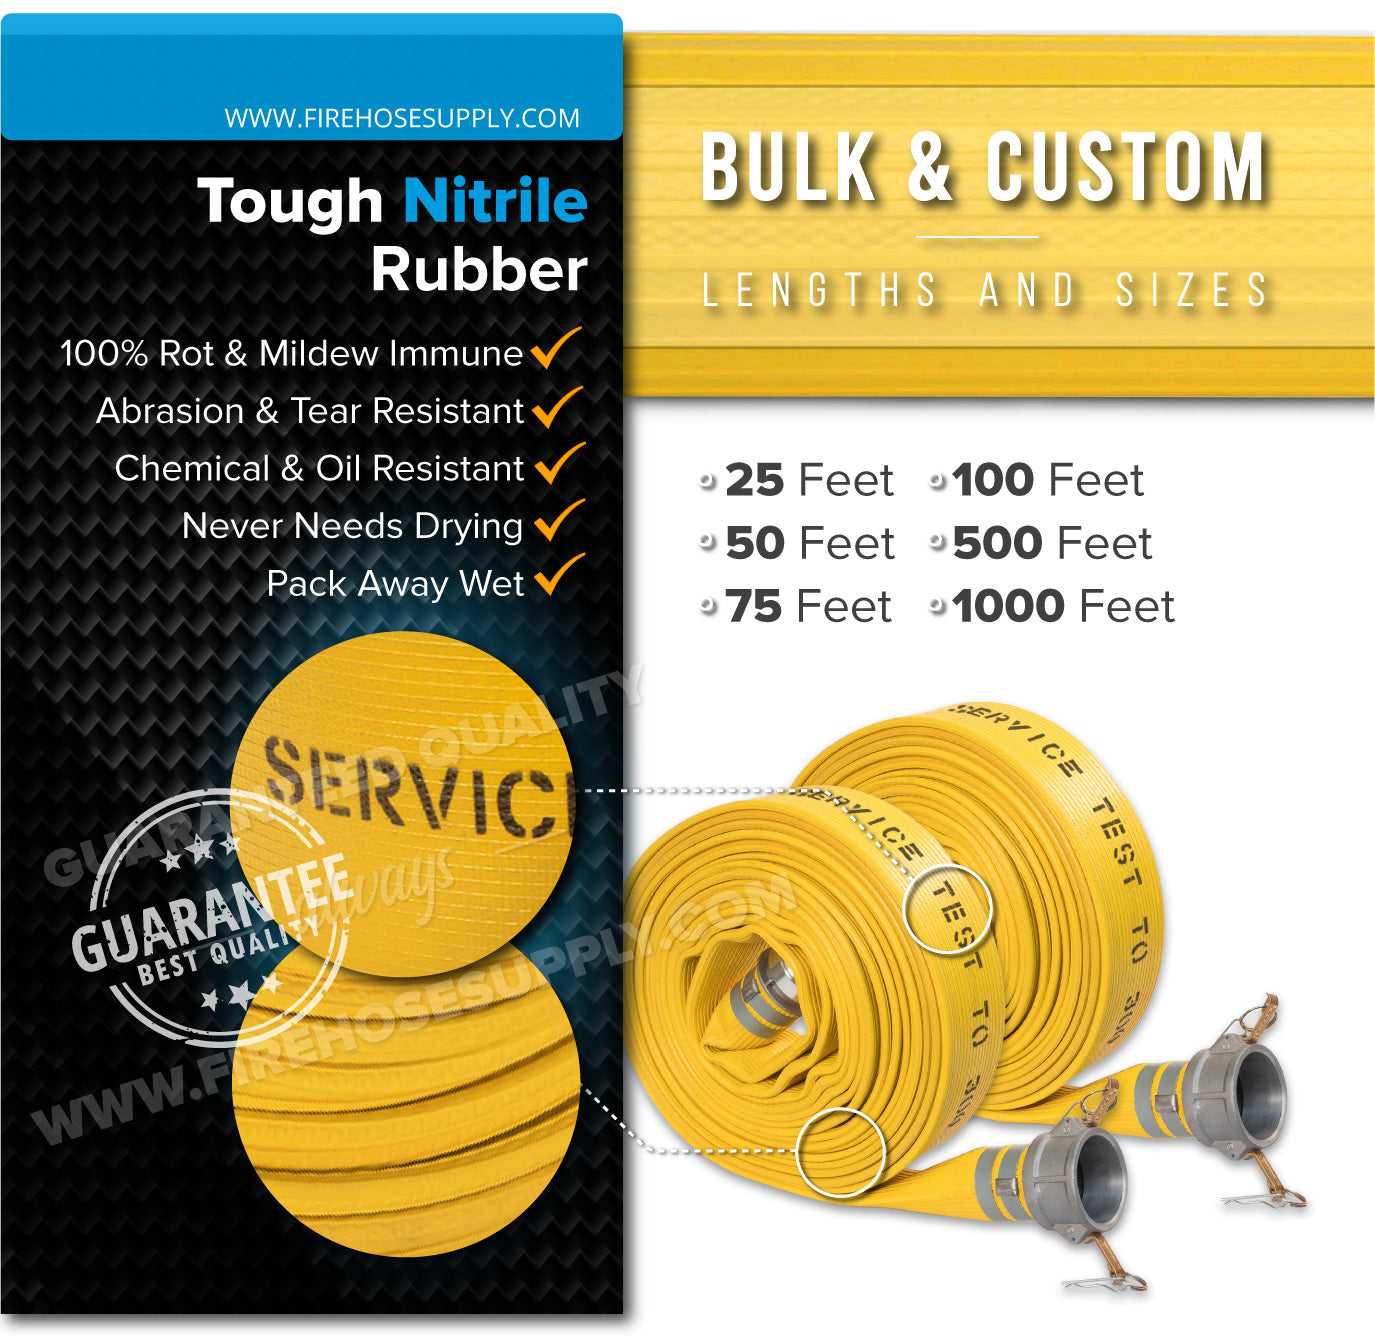 1 Inch Camlock Quick Connect Fire Hose Rubber Materials